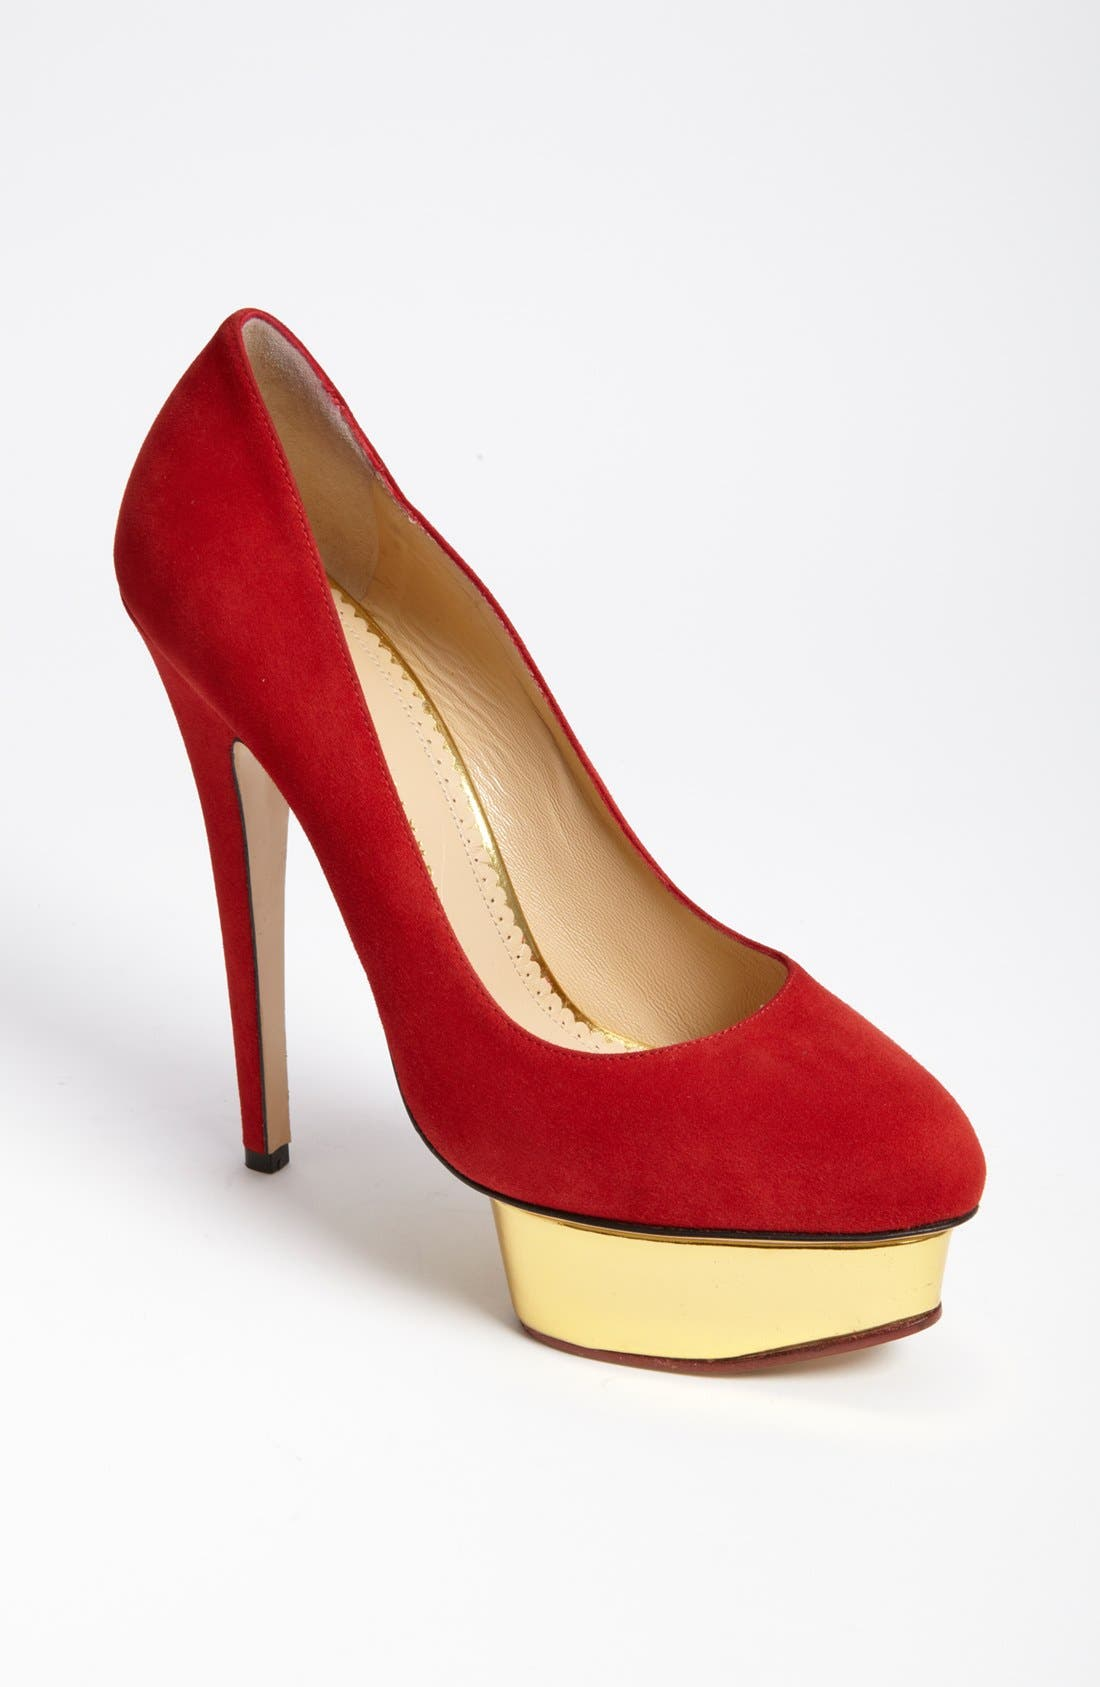 Alternate Image 1 Selected - Charlotte Olympia 'Dolly' Platform Pump